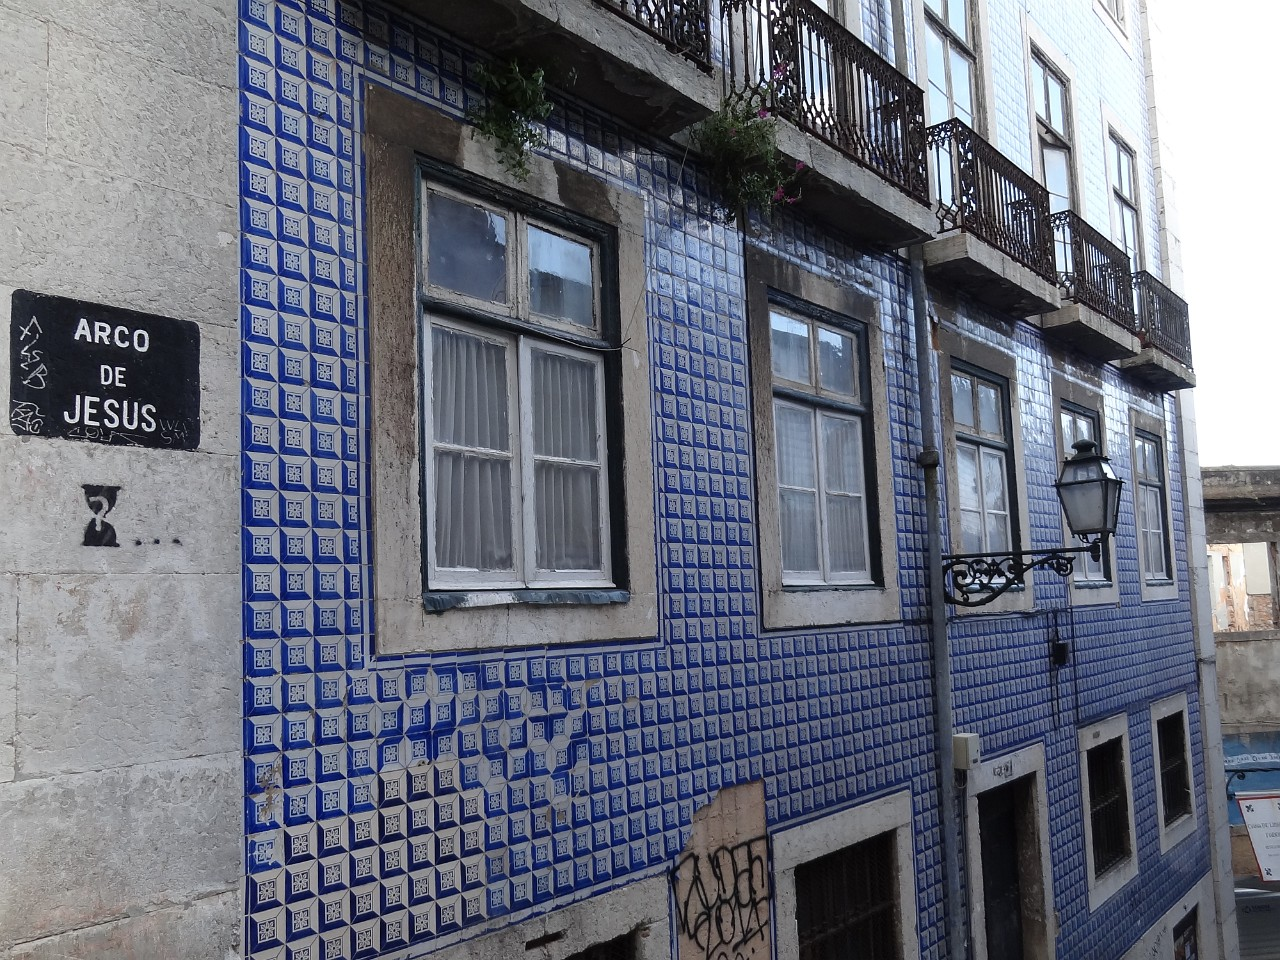 3D looking tiles on Arco de Jesus